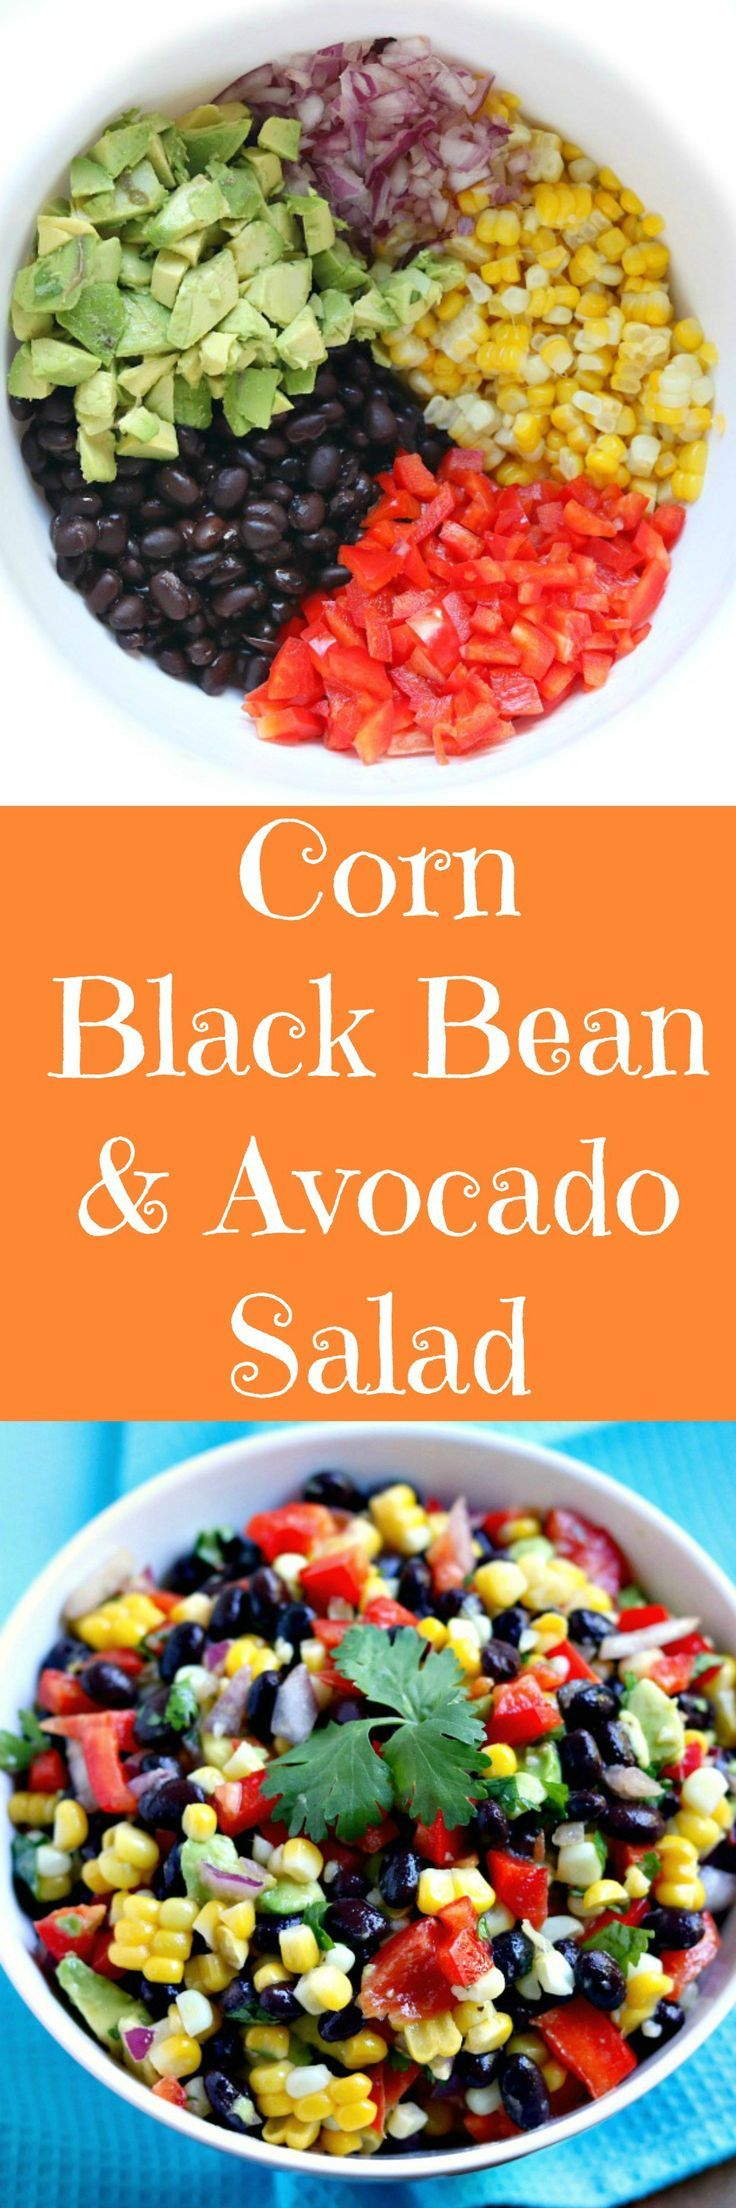 corn black bean & avocado salad